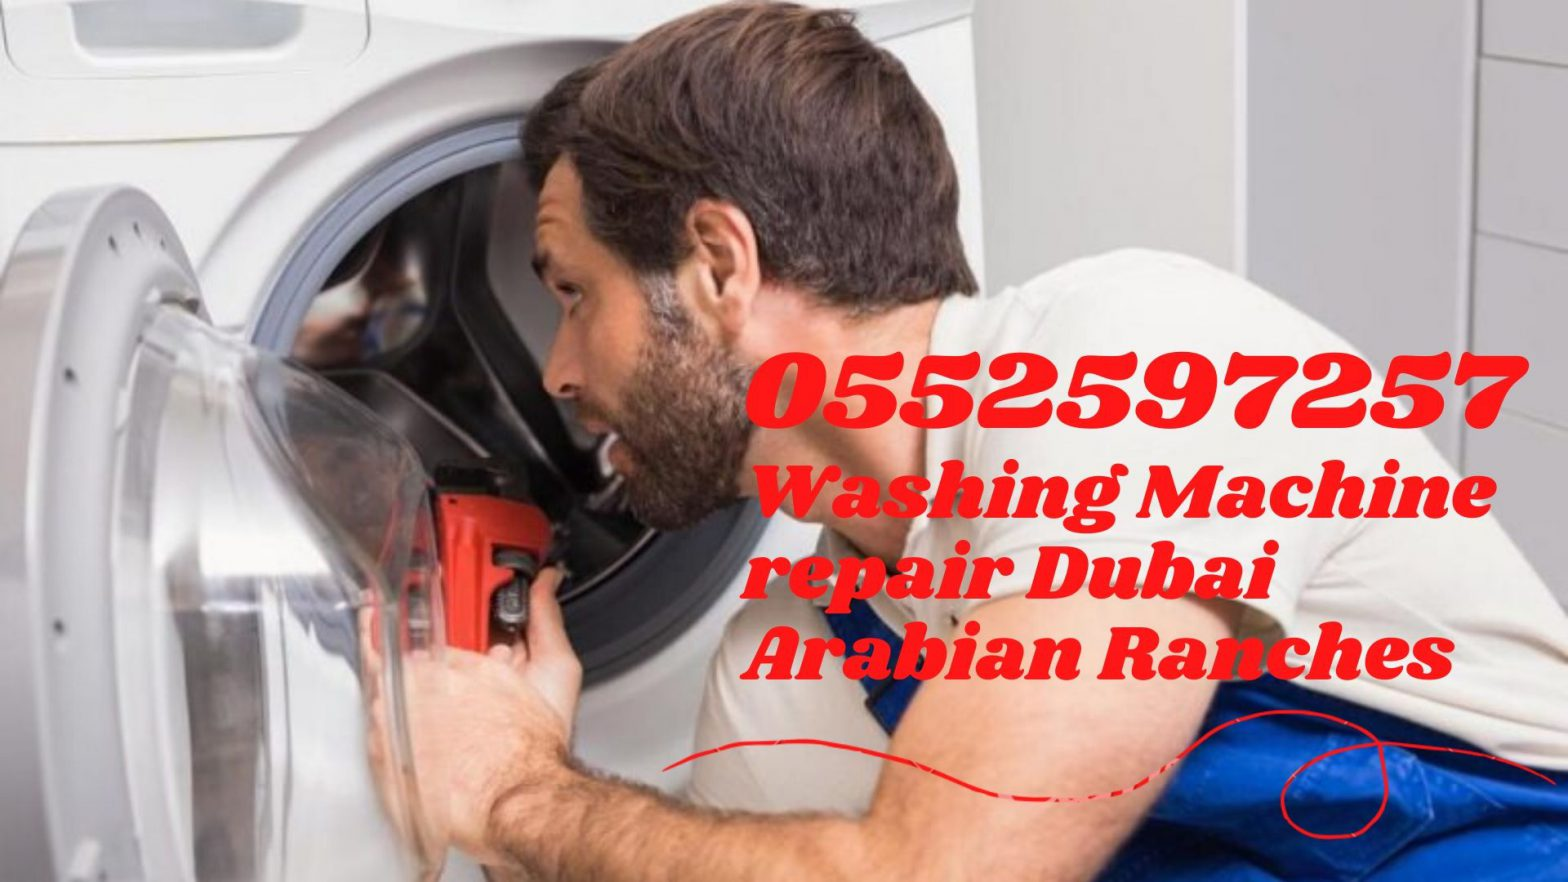 Washing machine repair Dubai Arabian ranches